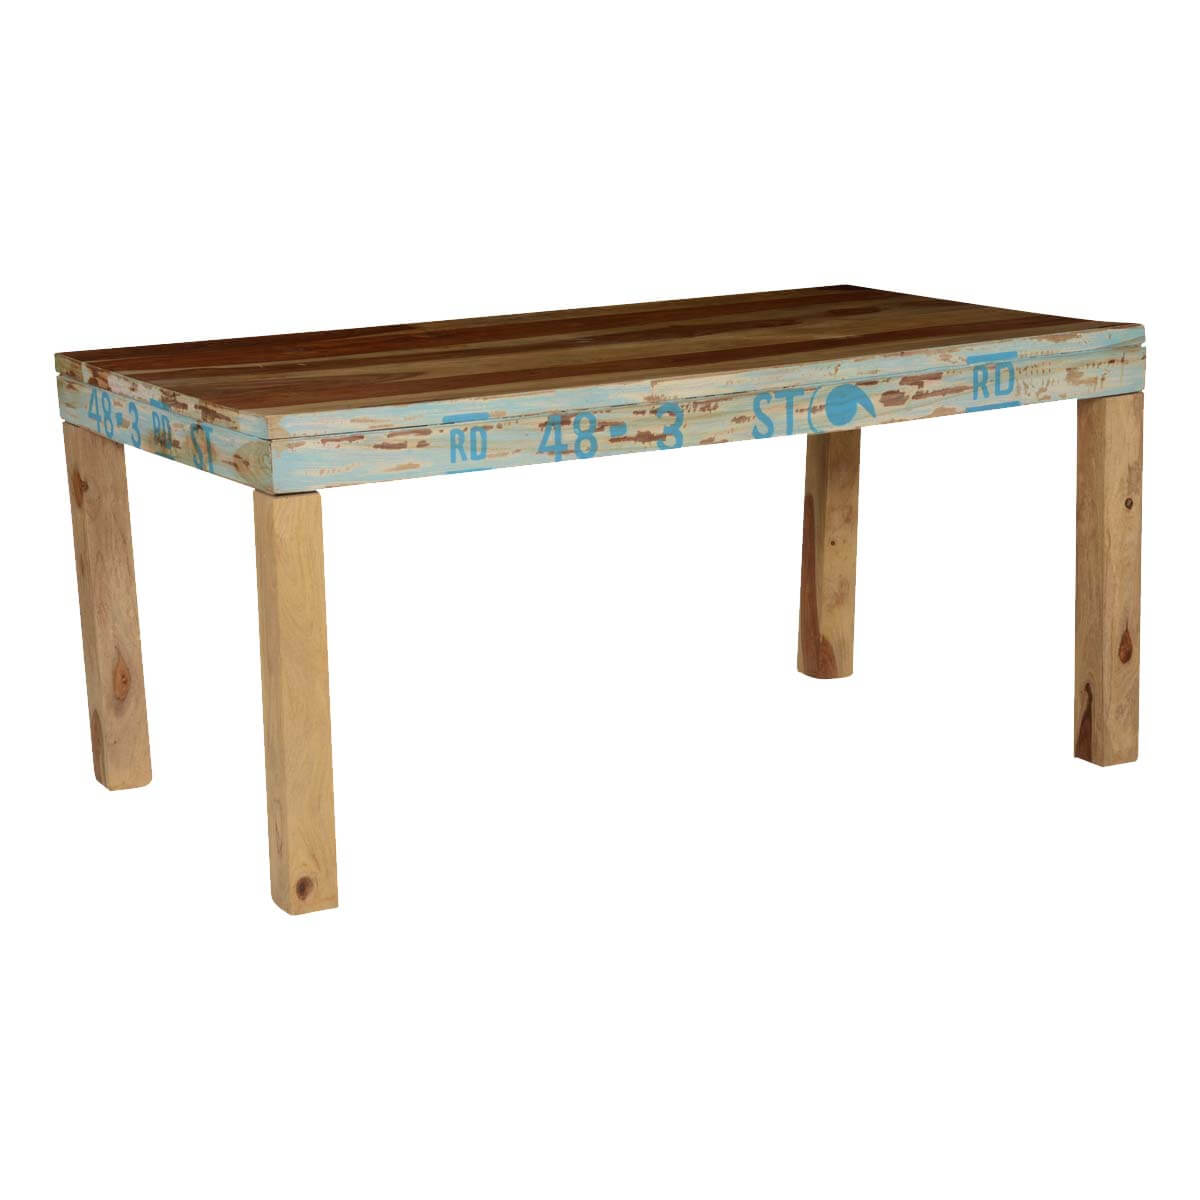 Natural Rustic Solid Wood Rectangular Dining Table : 74352 from www.sierralivingconcepts.com size 1200 x 1200 jpeg 73kB